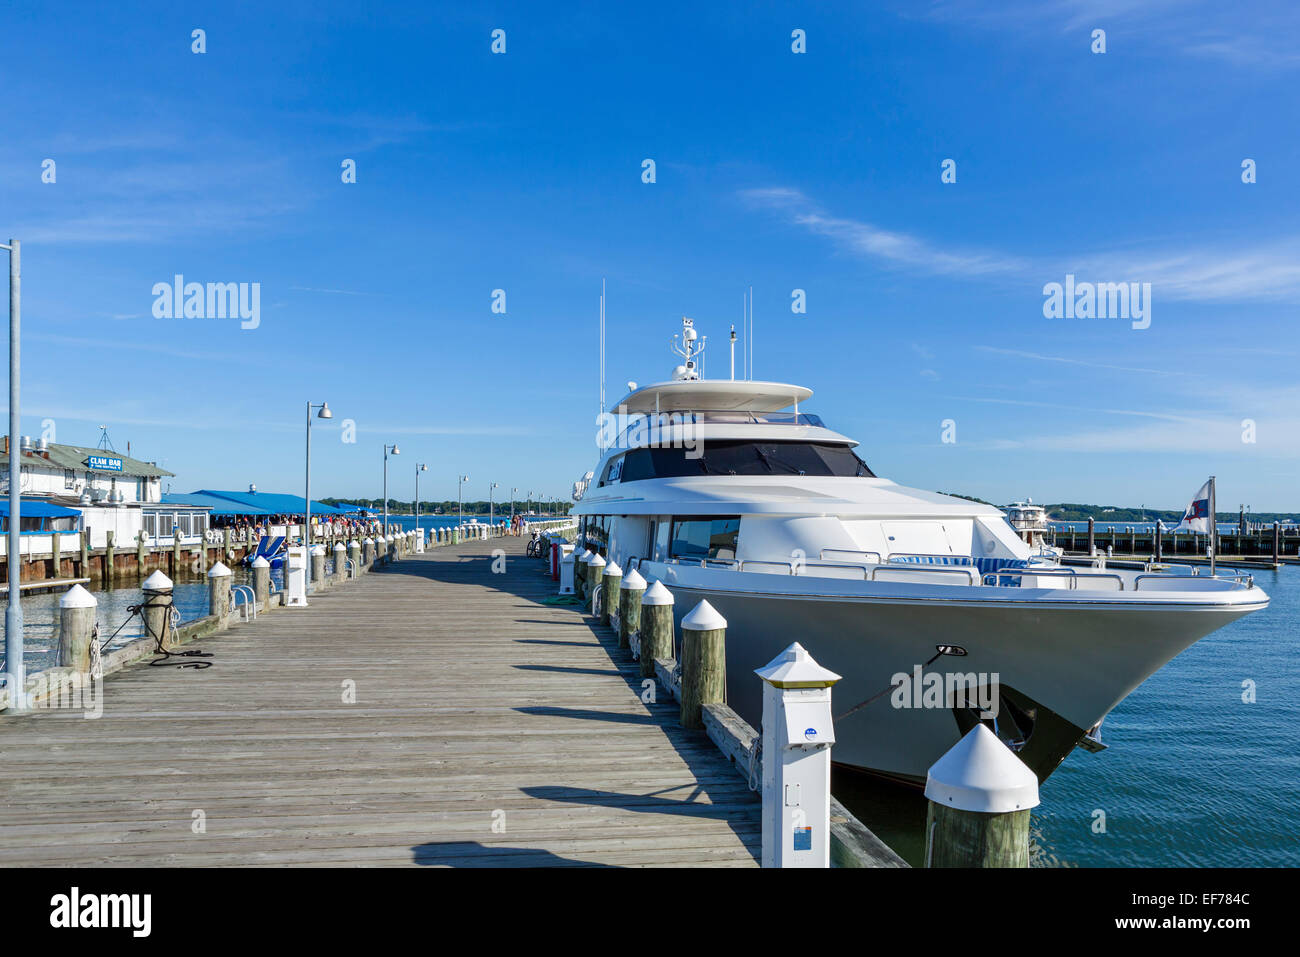 Luxus-Yacht angedockt in das Dorf Greenport, Suffolk County, Long Island, NY, USA Stockbild